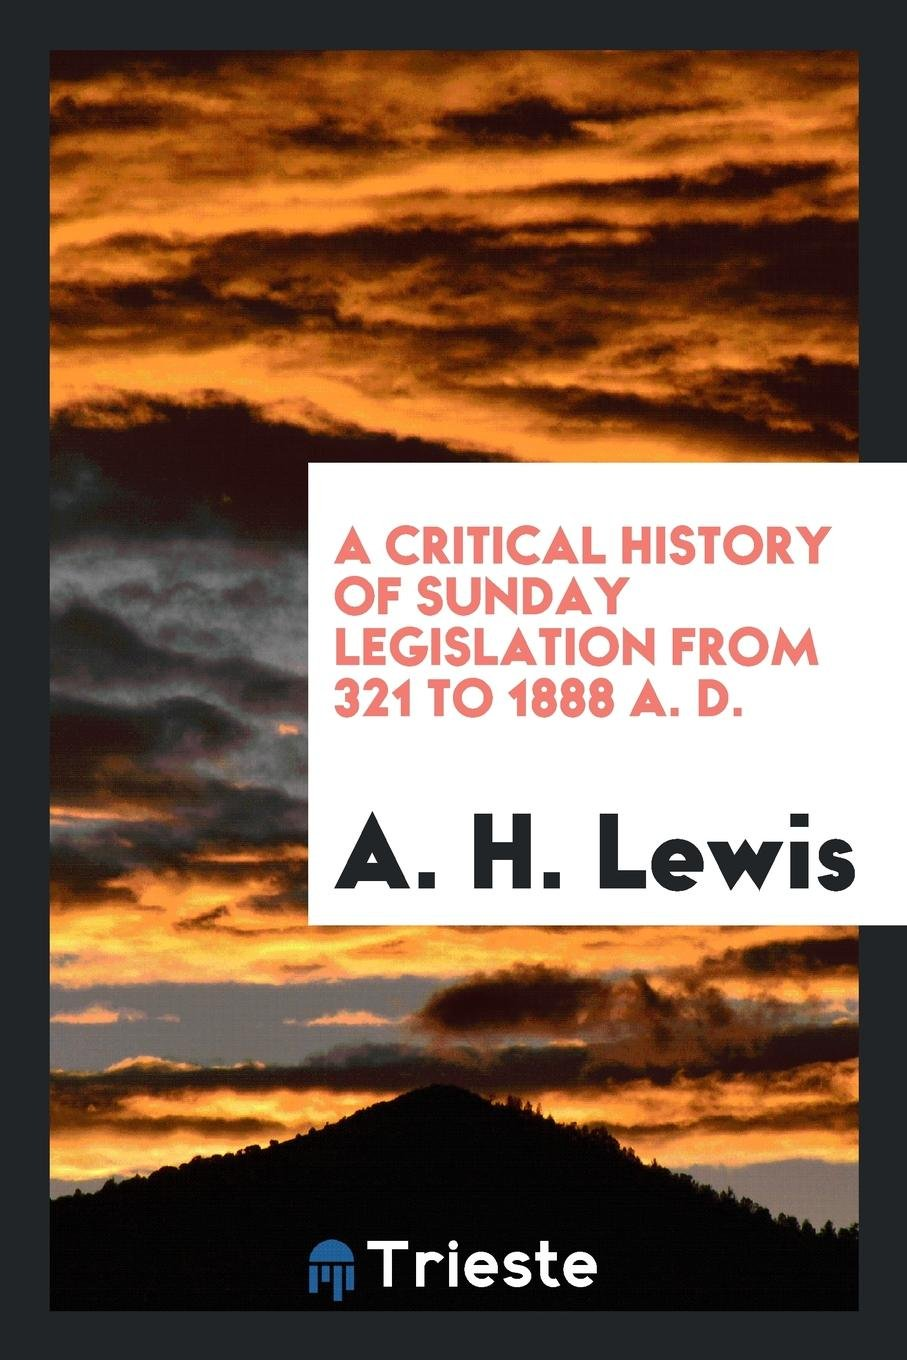 A Critical History of Sunday Legislation from 321 to 1888 A. D. PDF